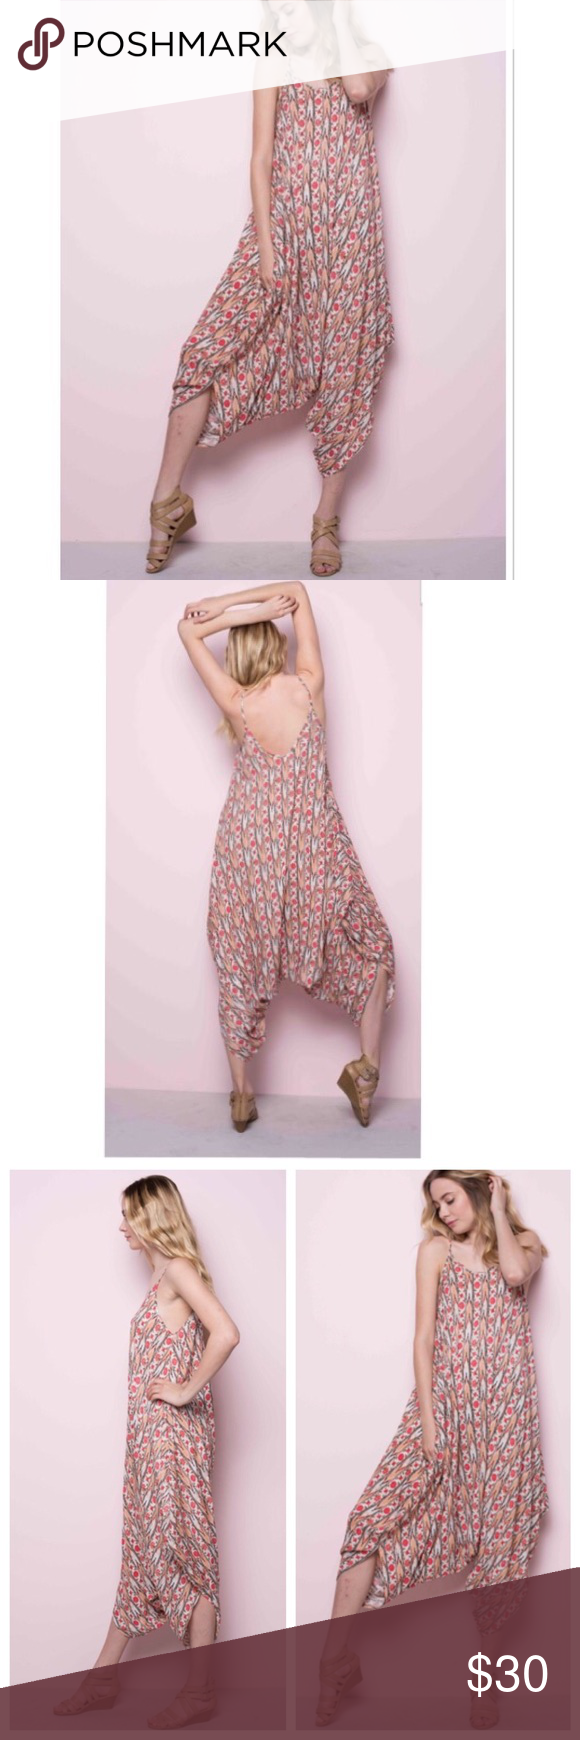 Chic printed harem jumpsuit Chic loose fit printed harem jumpsuit rayon soft fabric relaxed fit great style PLEASE Use the Poshmark new option you can purchase and it will give you the option to pick the size you want ( all sizes are available) BUNDLE and save 10% ( no trades price is firm unless bundled) Pants Jumpsuits & Rompers